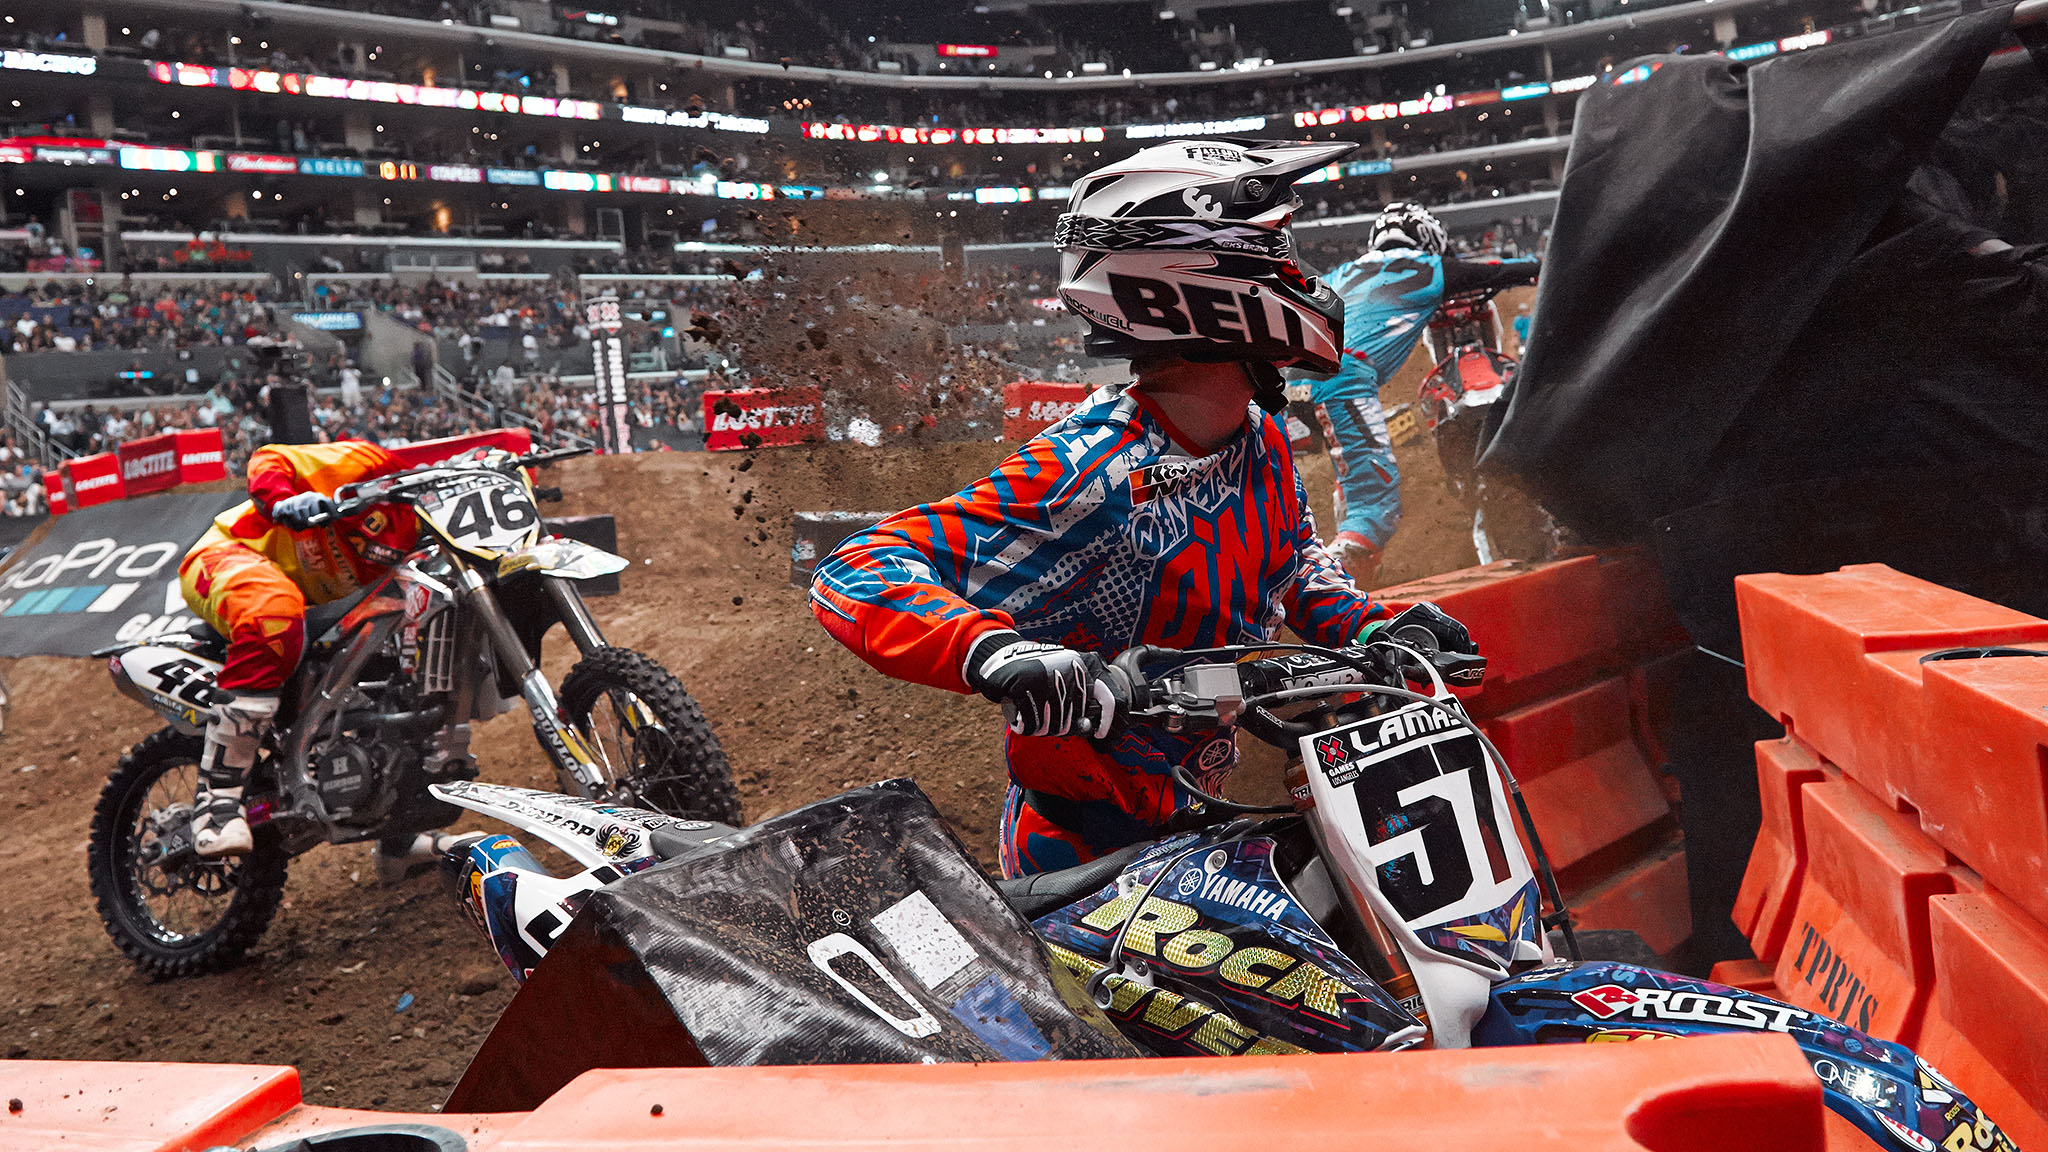 Chad Reed squeezed Ben LaMay and Weston Peick out on the hole shot in the Men's Moto X Racing final Saturday night, sending the two into the jersey barrier on the first turn of the first lap. LaMay got back into the race, but Peick had to roll his bike off the track.